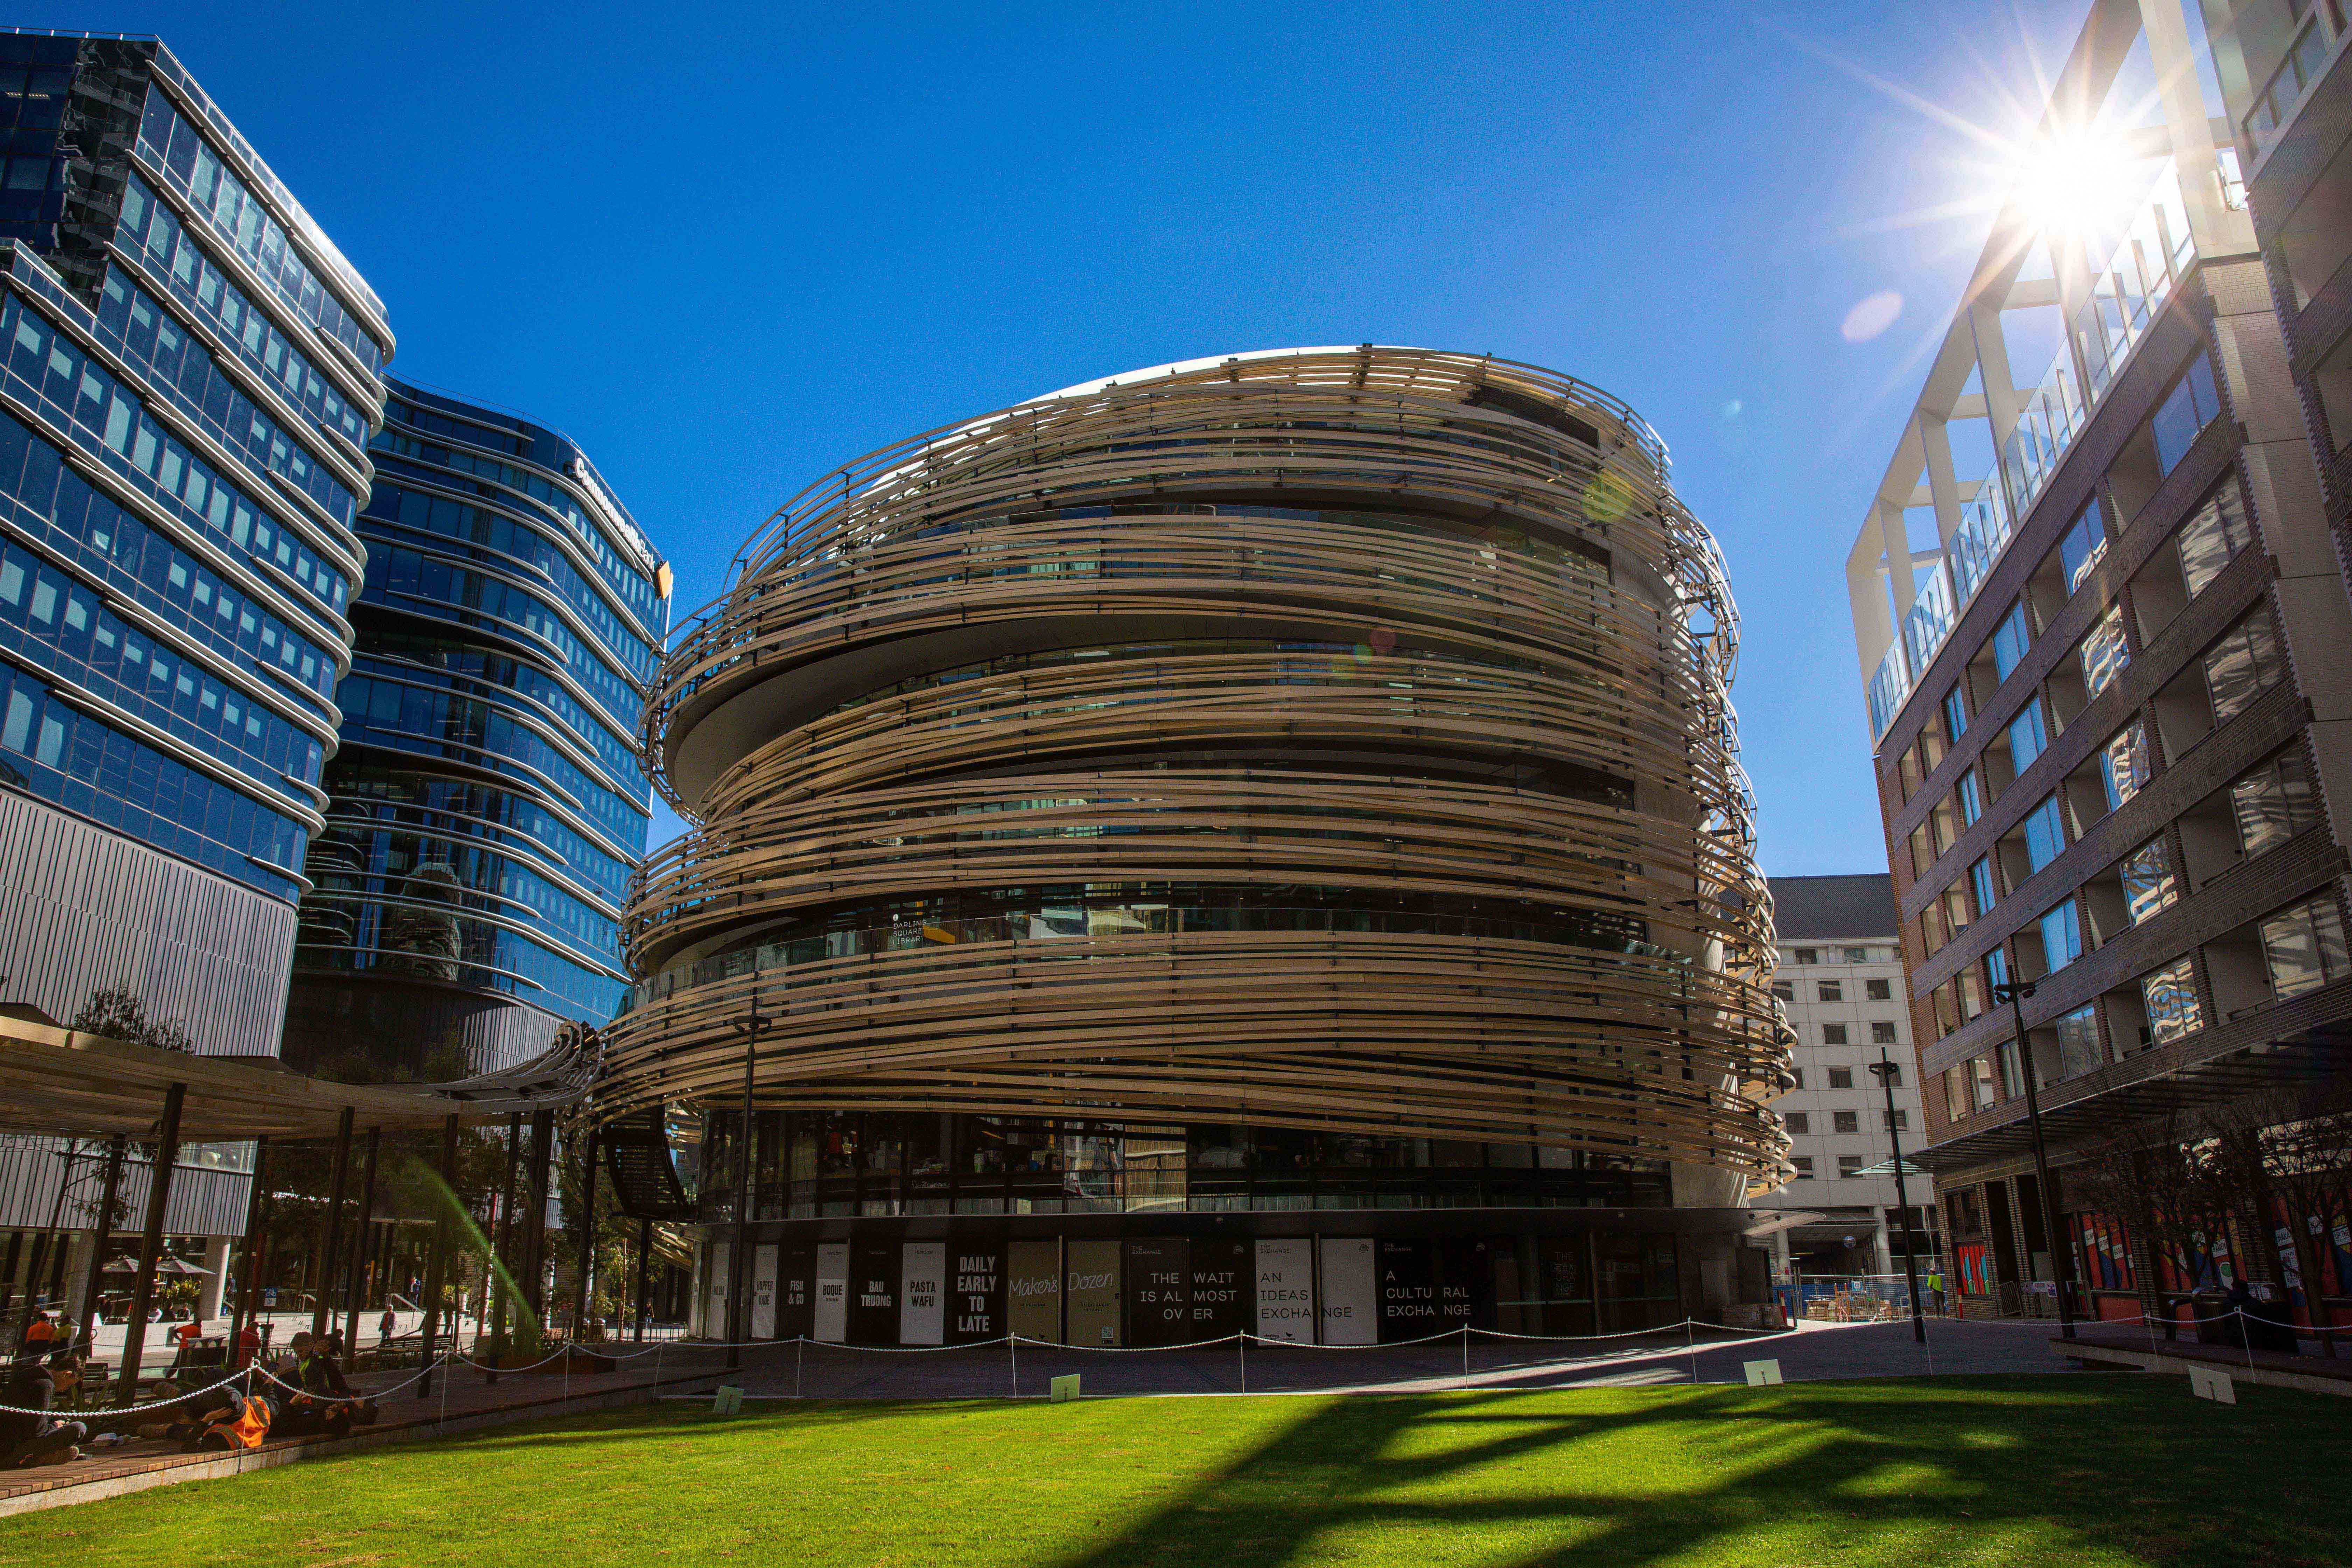 City of Sydney and Lendlease open state-of-the-art Darling Square Library